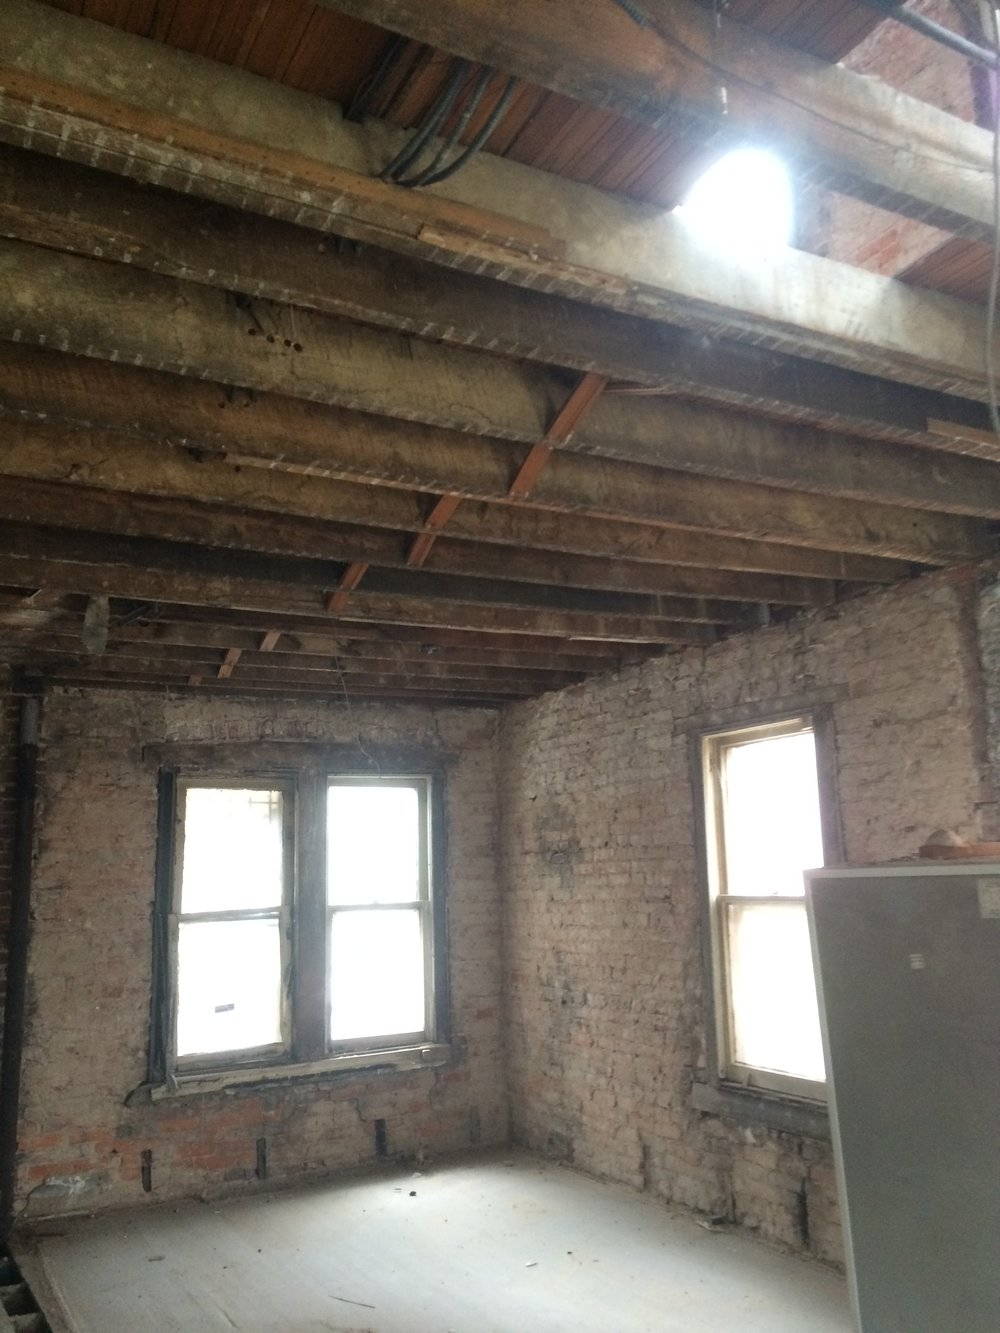 2nd floor after interior demolition